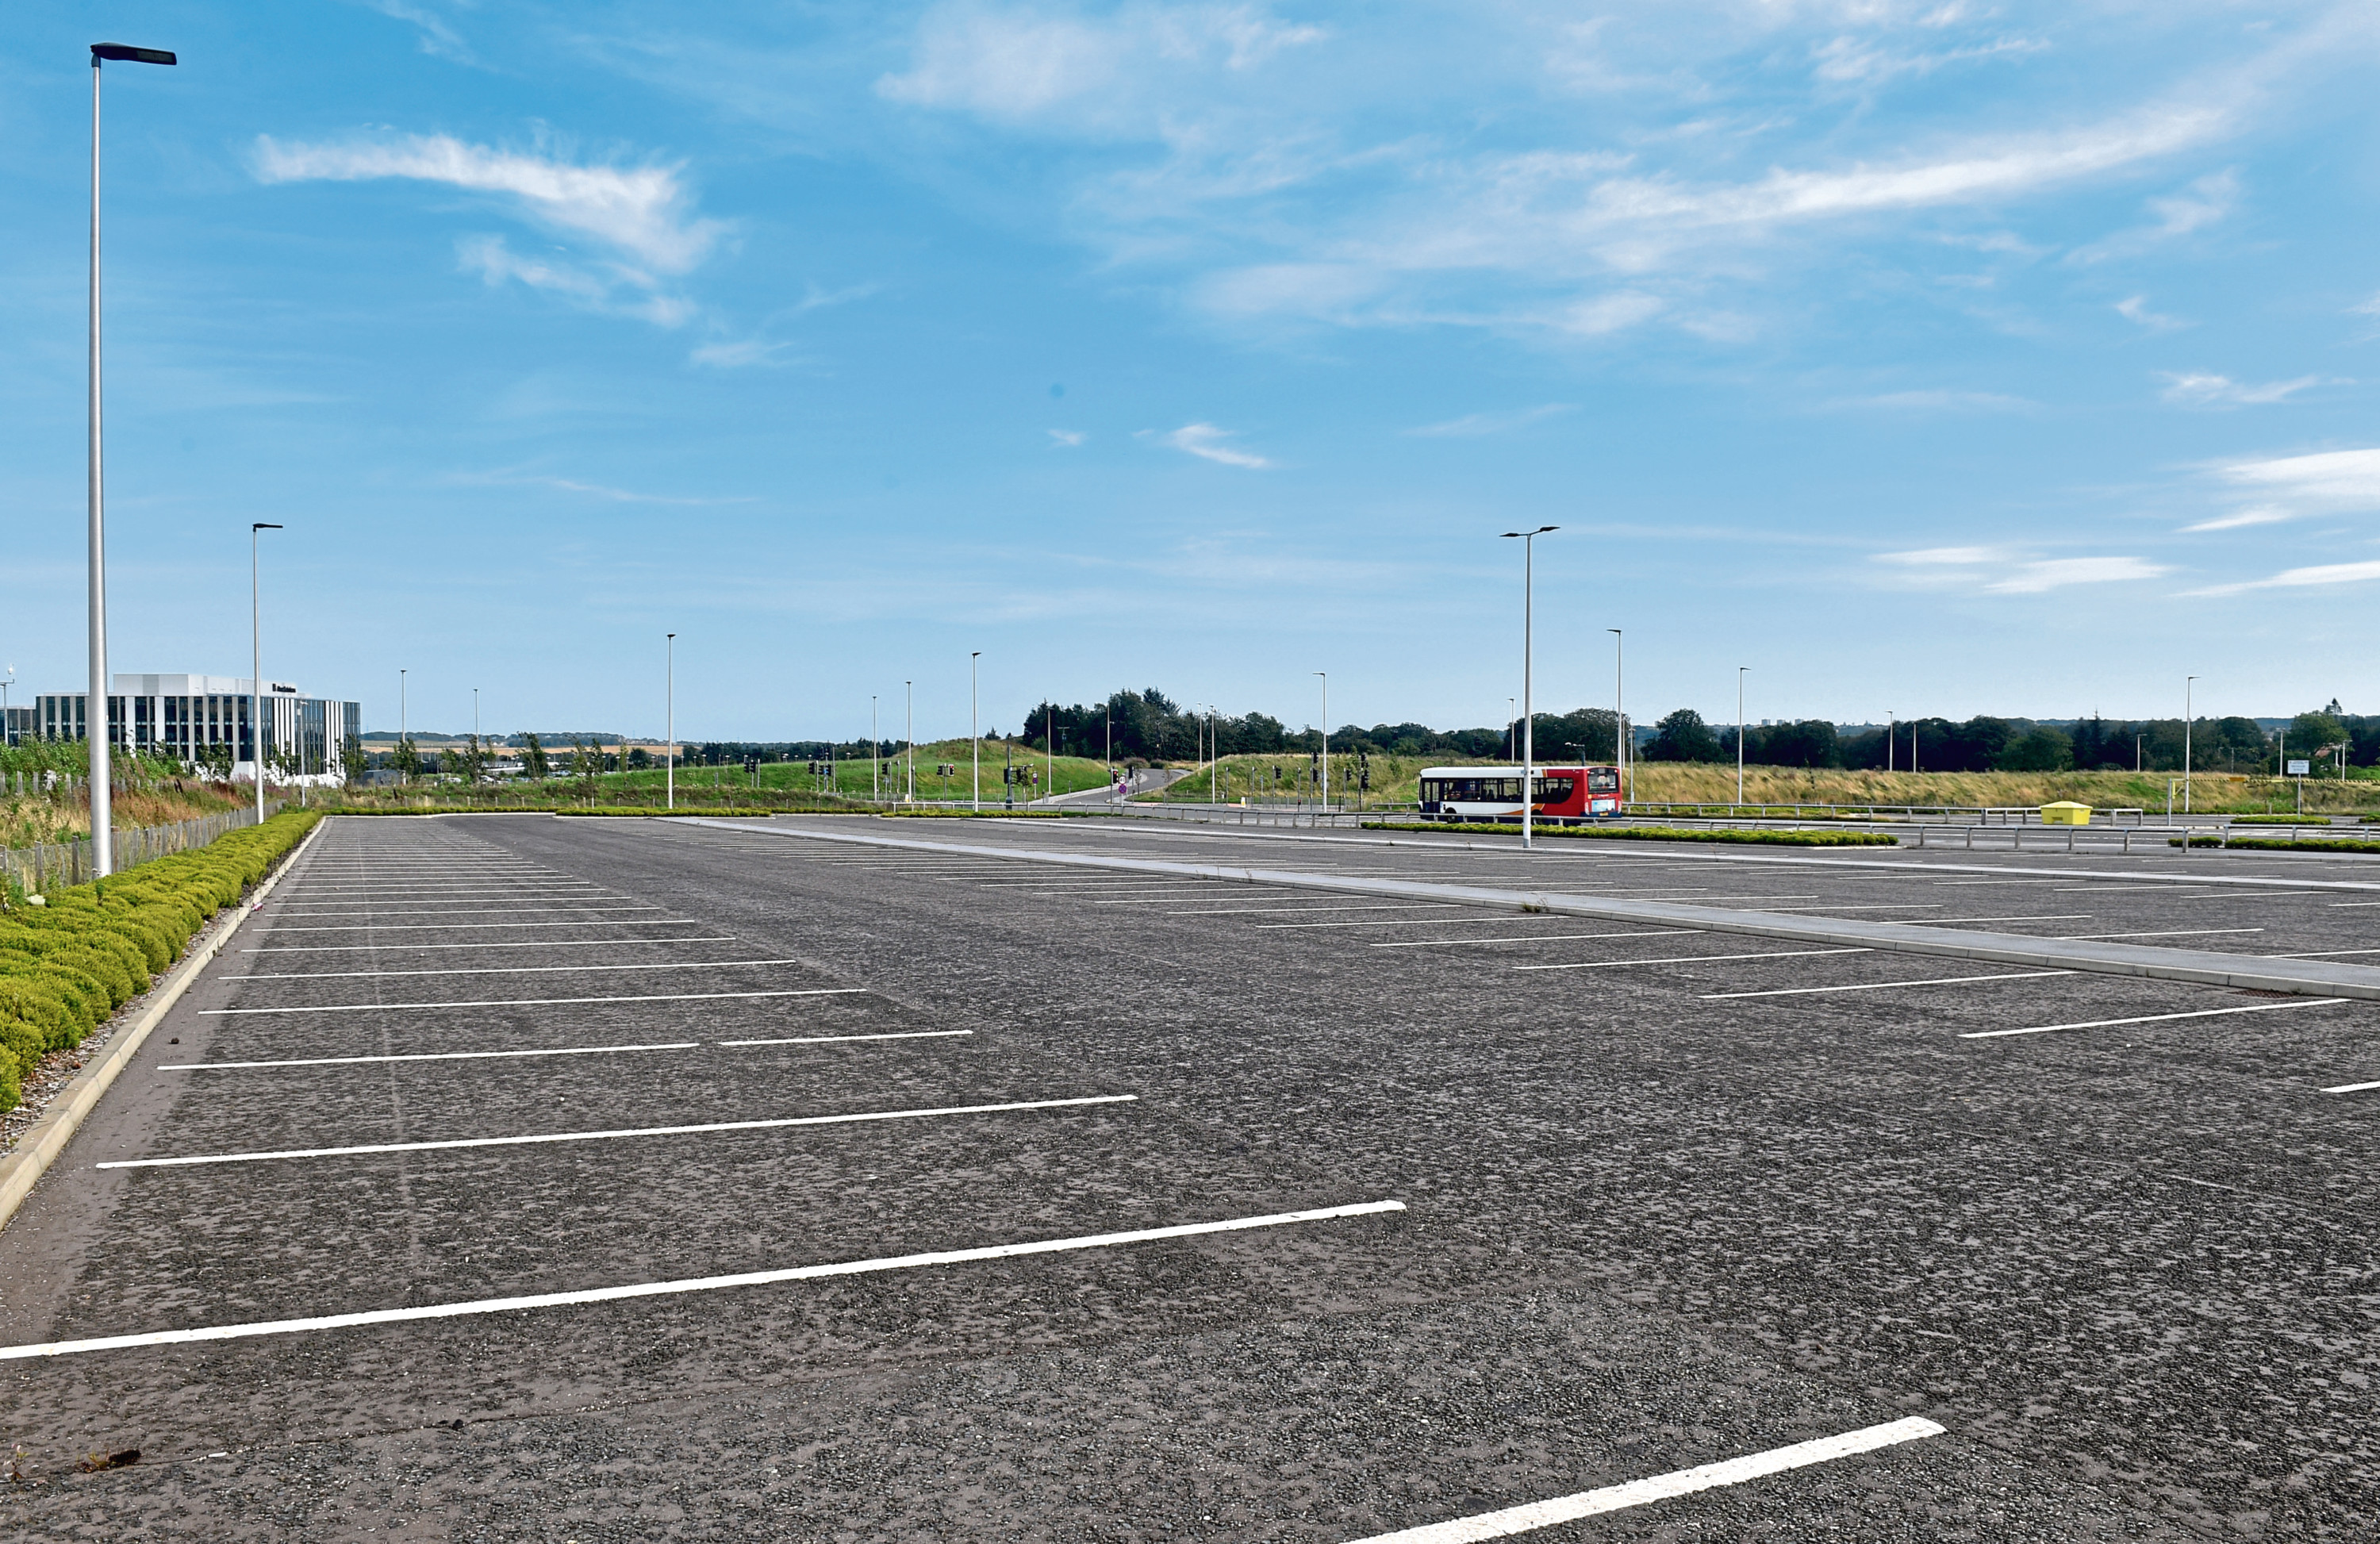 Empty spaces at the Craibstone park and ride facility